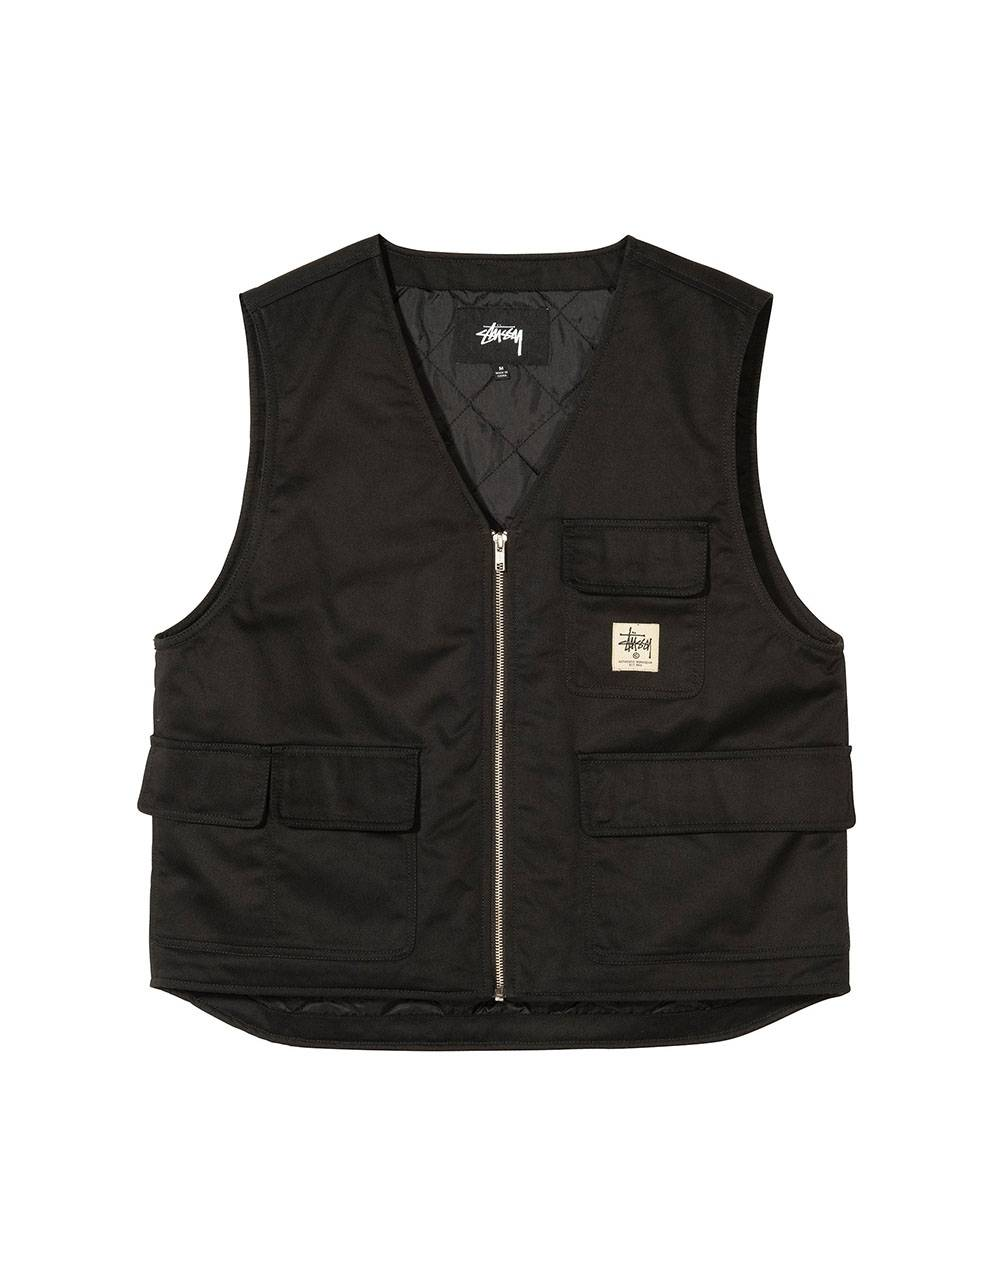 Stussy insulated work vest - black Stussy Jacket 122,13 €